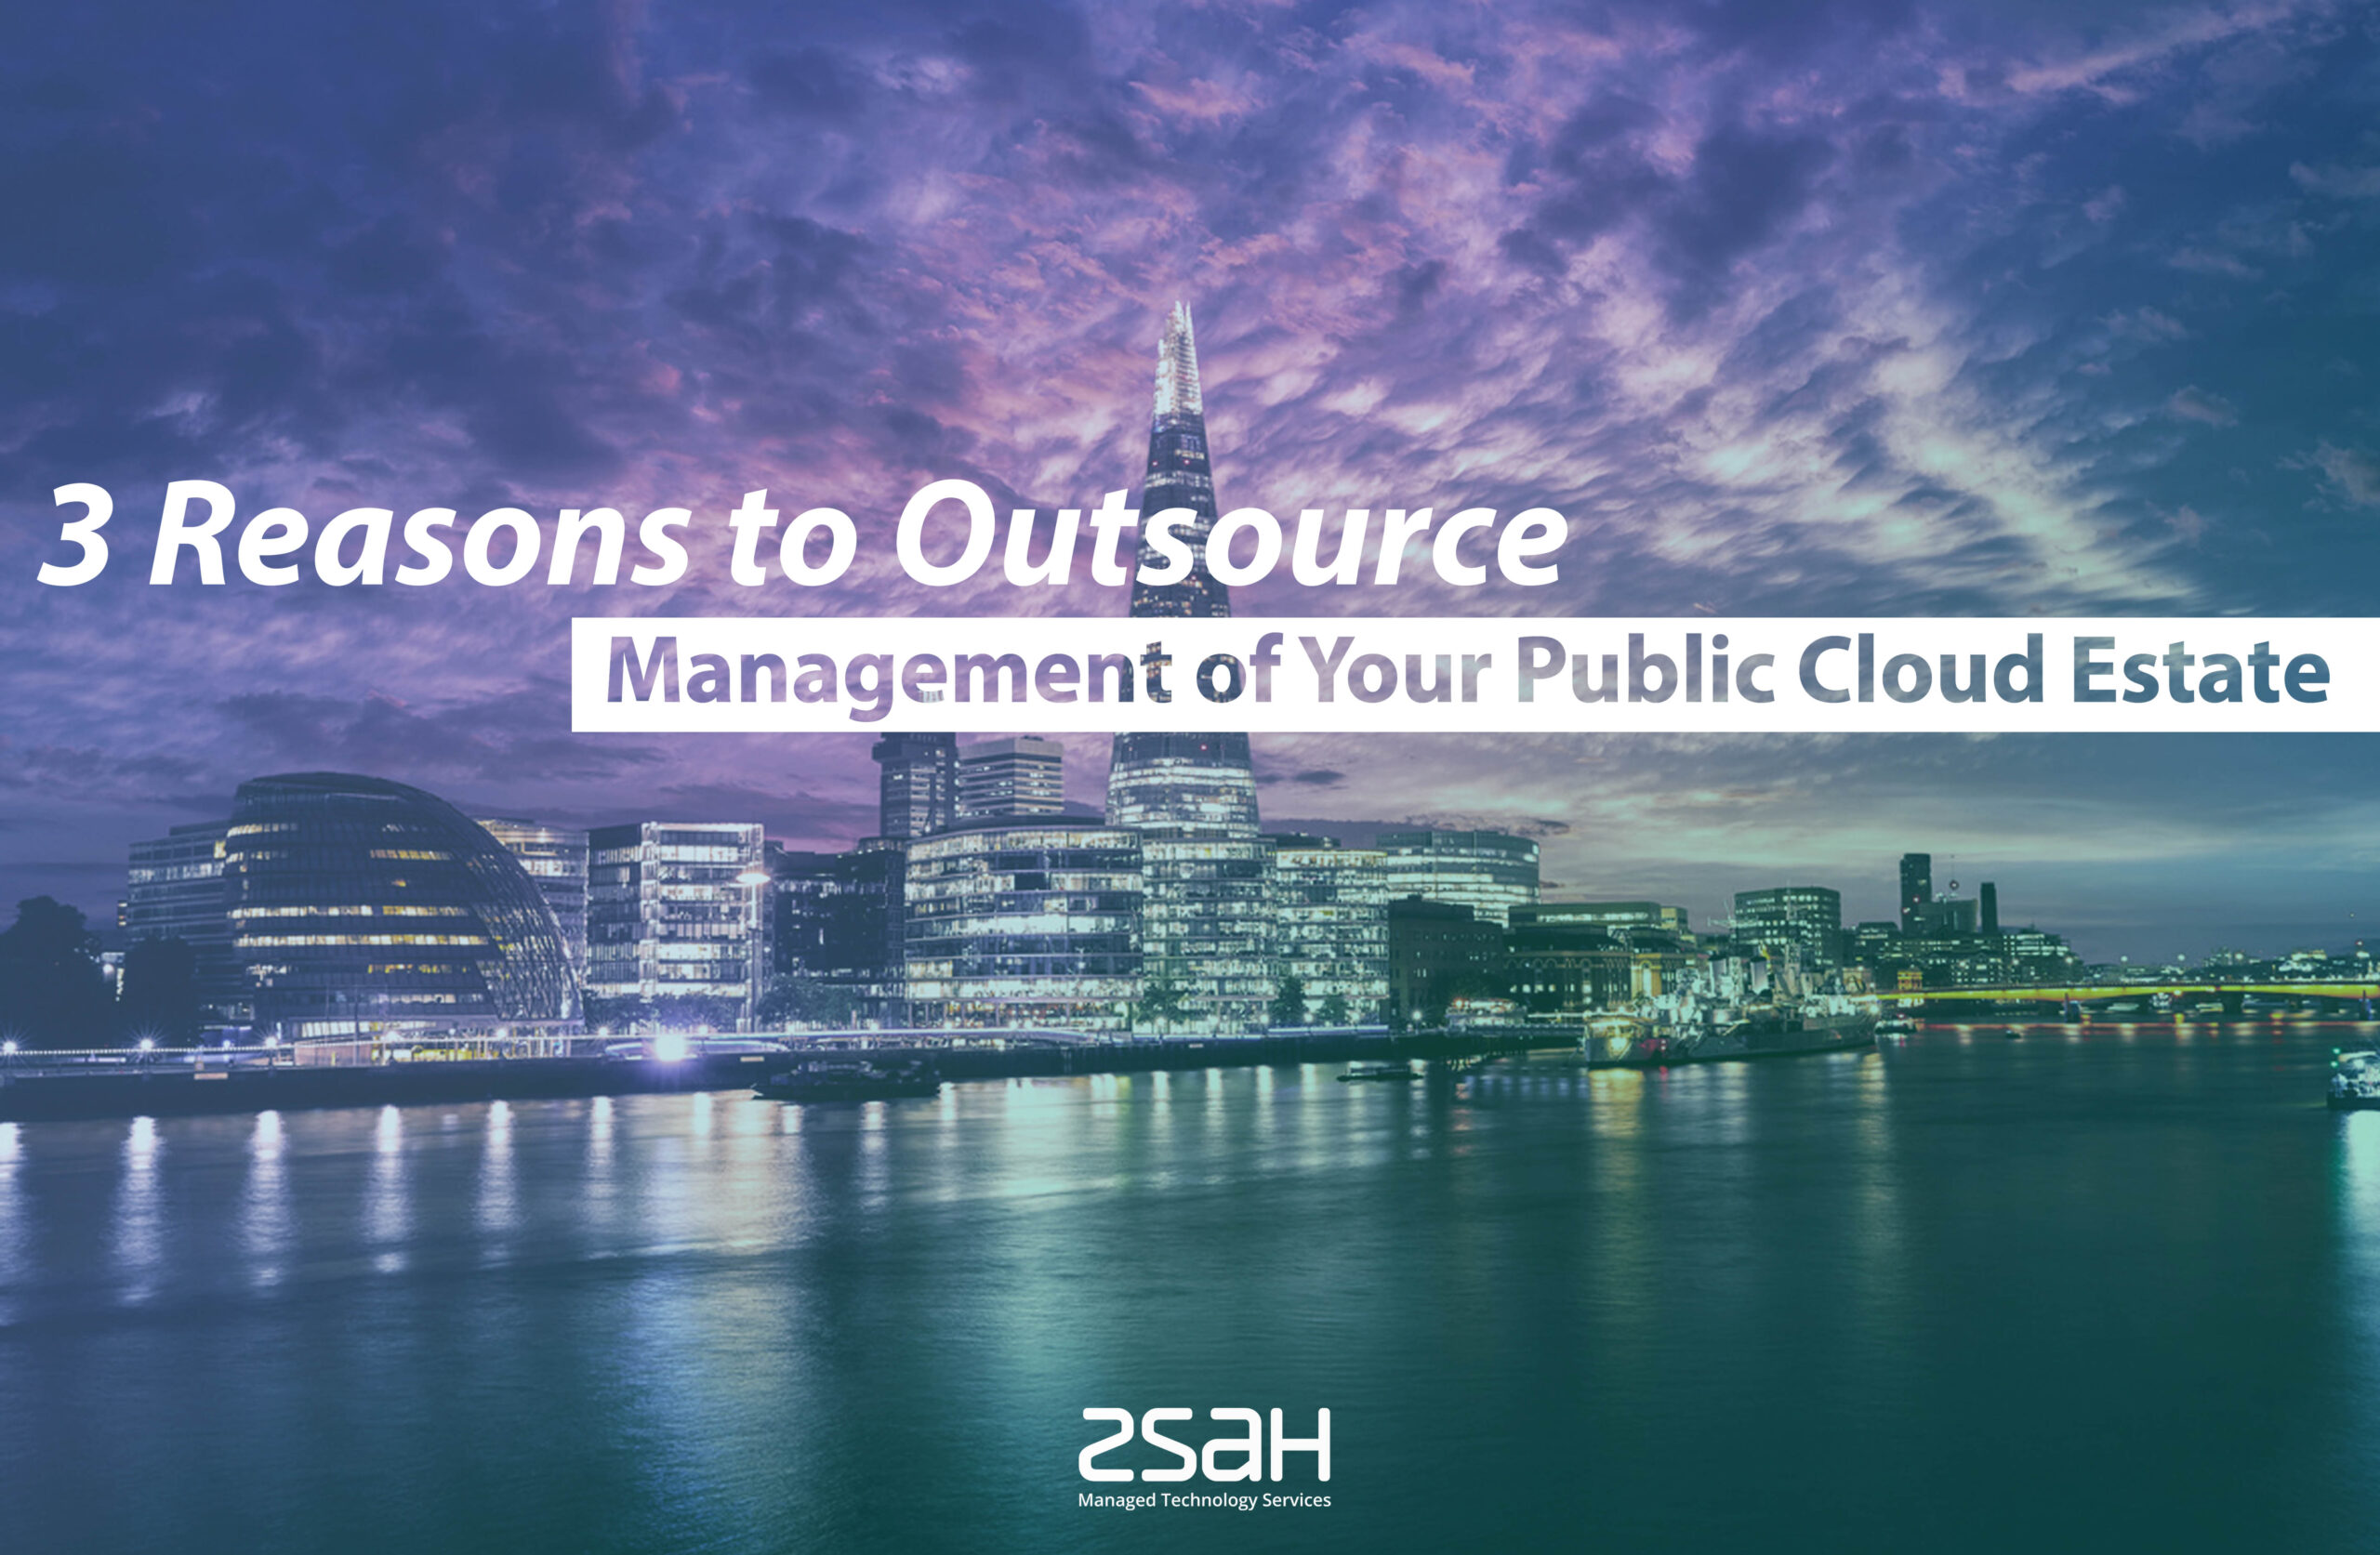 3 reasons to outsource management of your public cloud - zsah